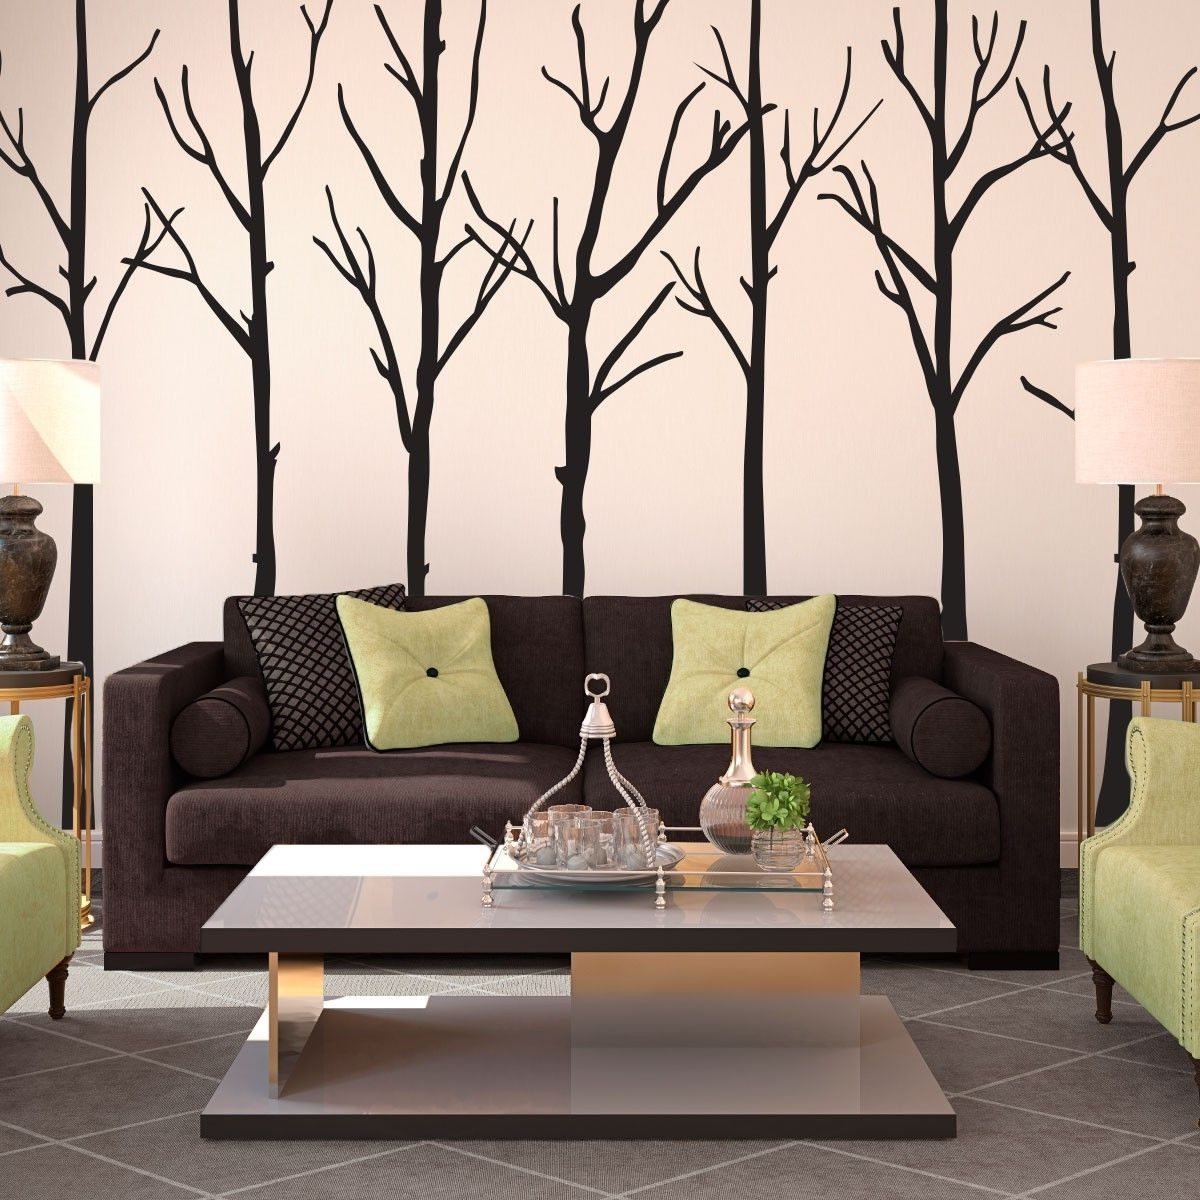 Wall Art Designs For Living Room • Wall Design Regarding Most Popular Blik Wall Art (View 13 of 15)